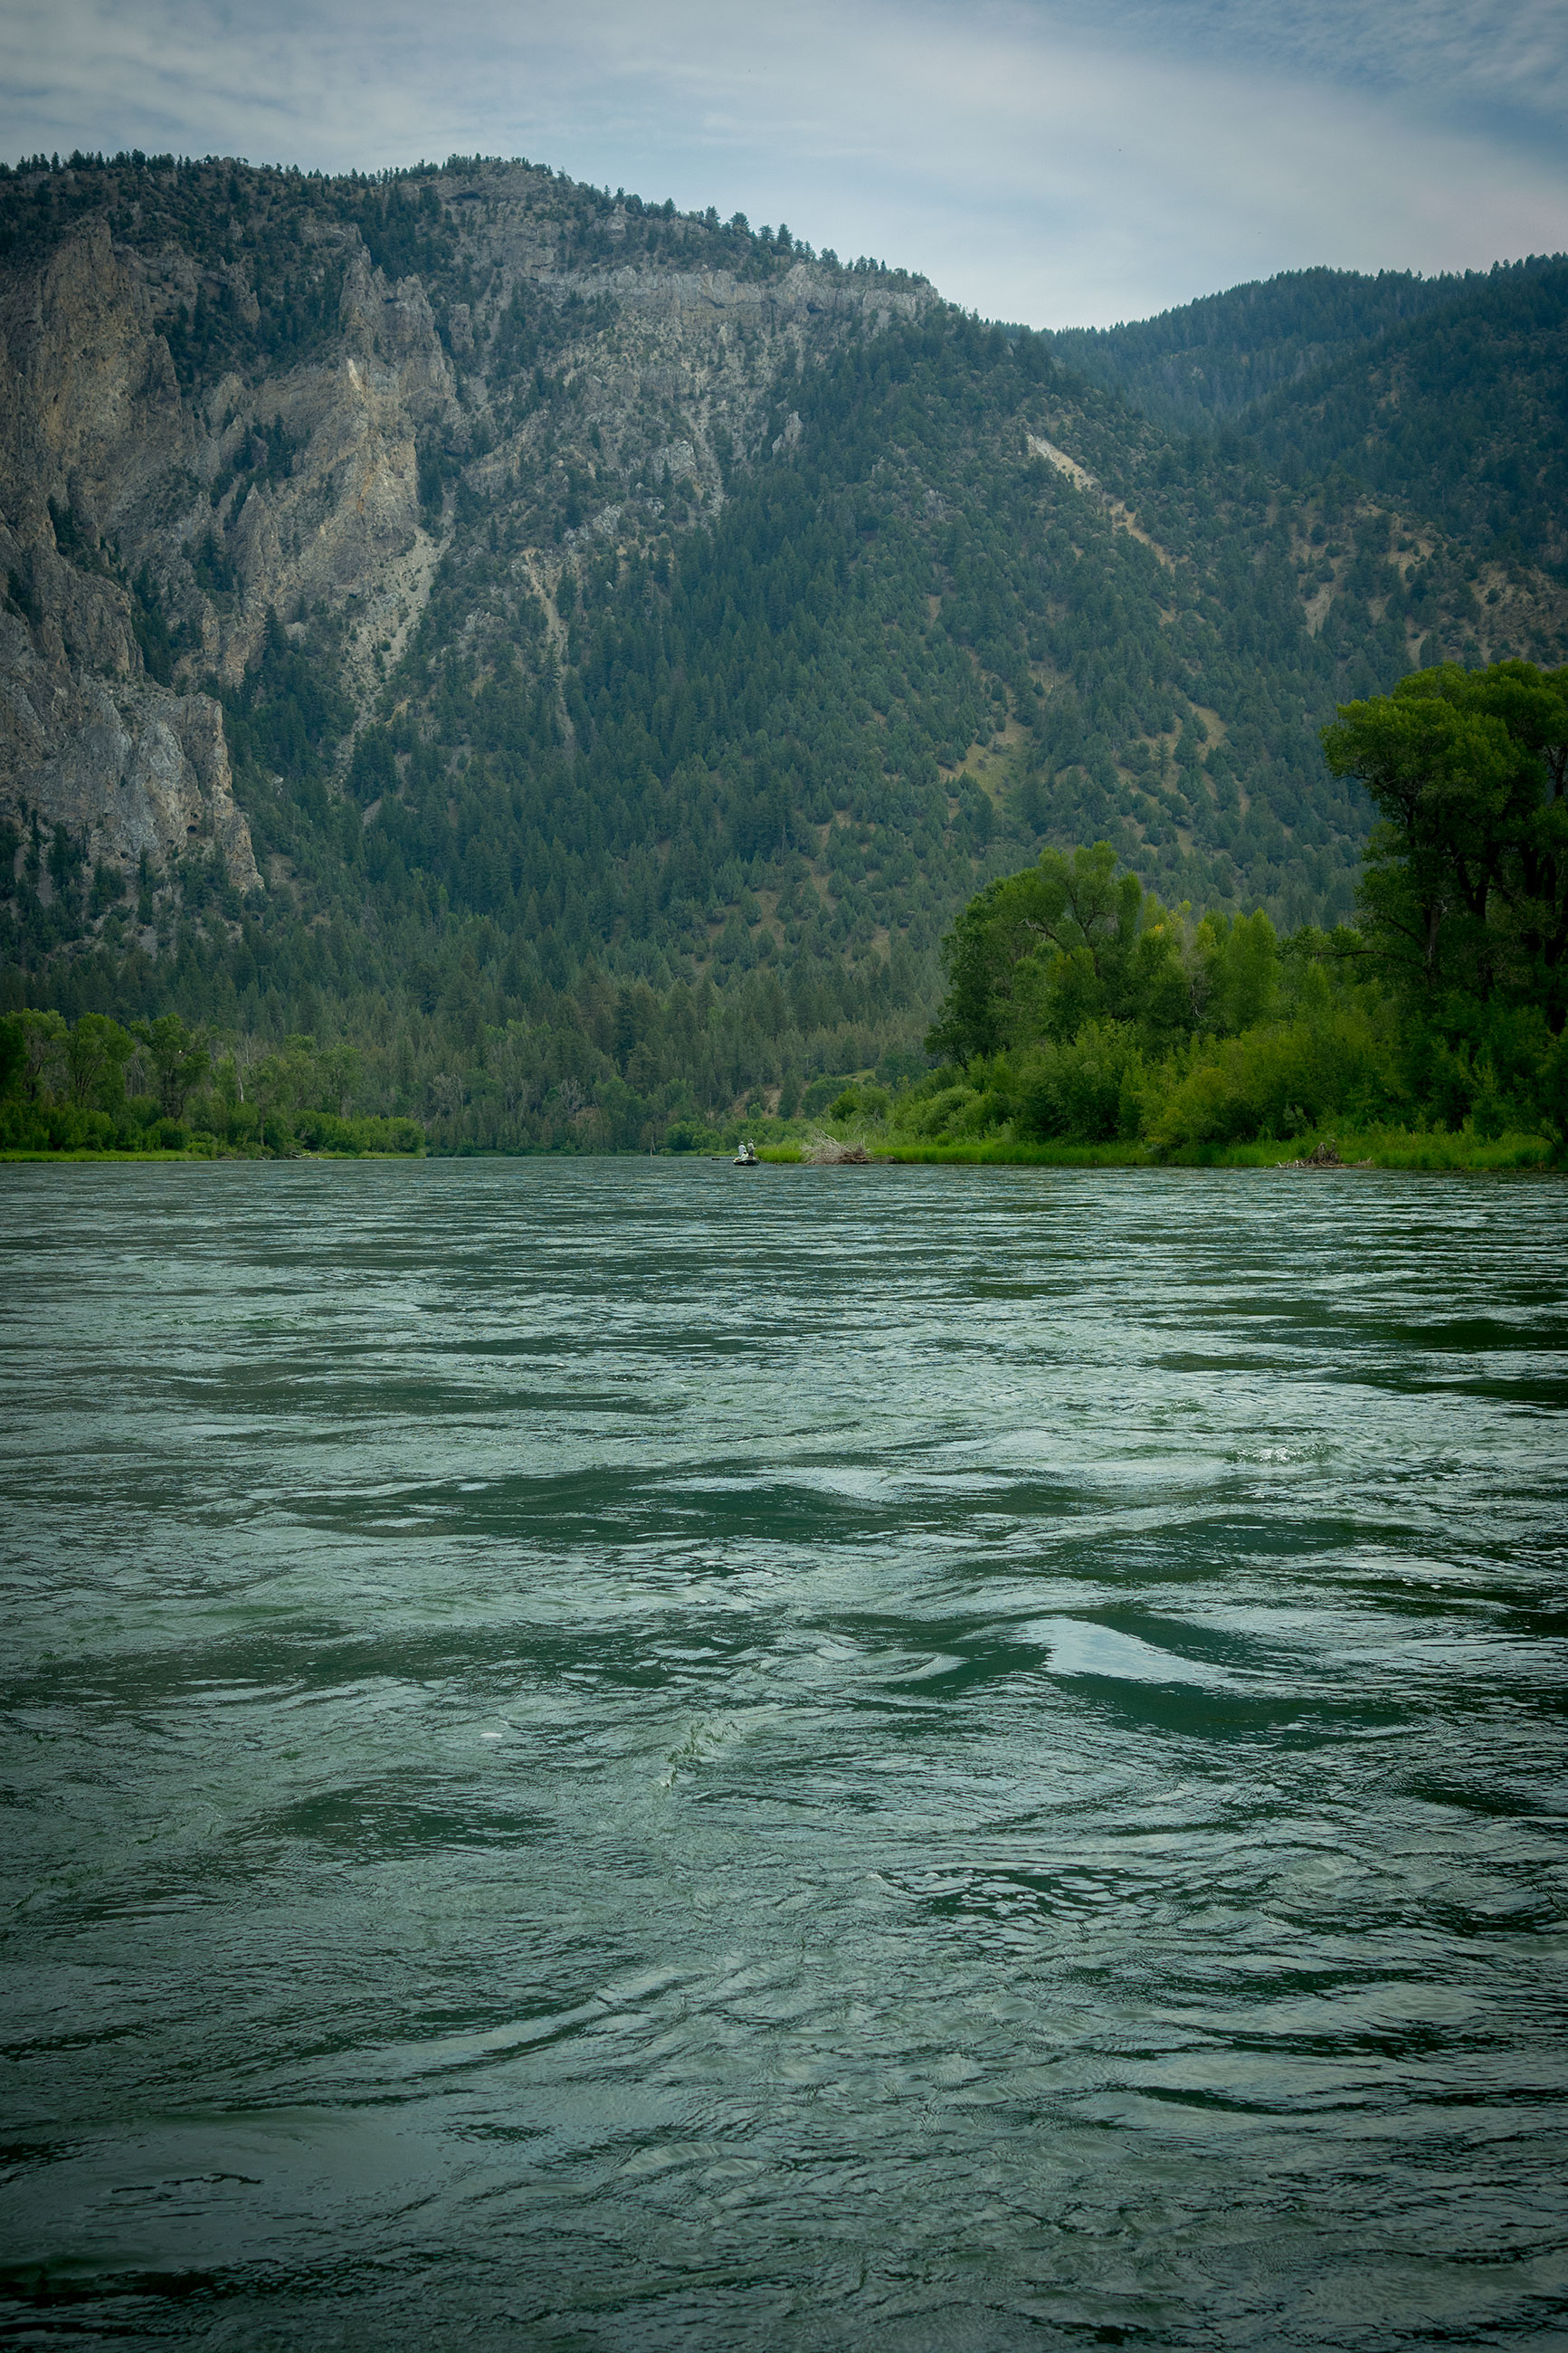 Blow this photo up for a sense of scale. That drift boat gives you some idea of the size of the South Fork Canyon.